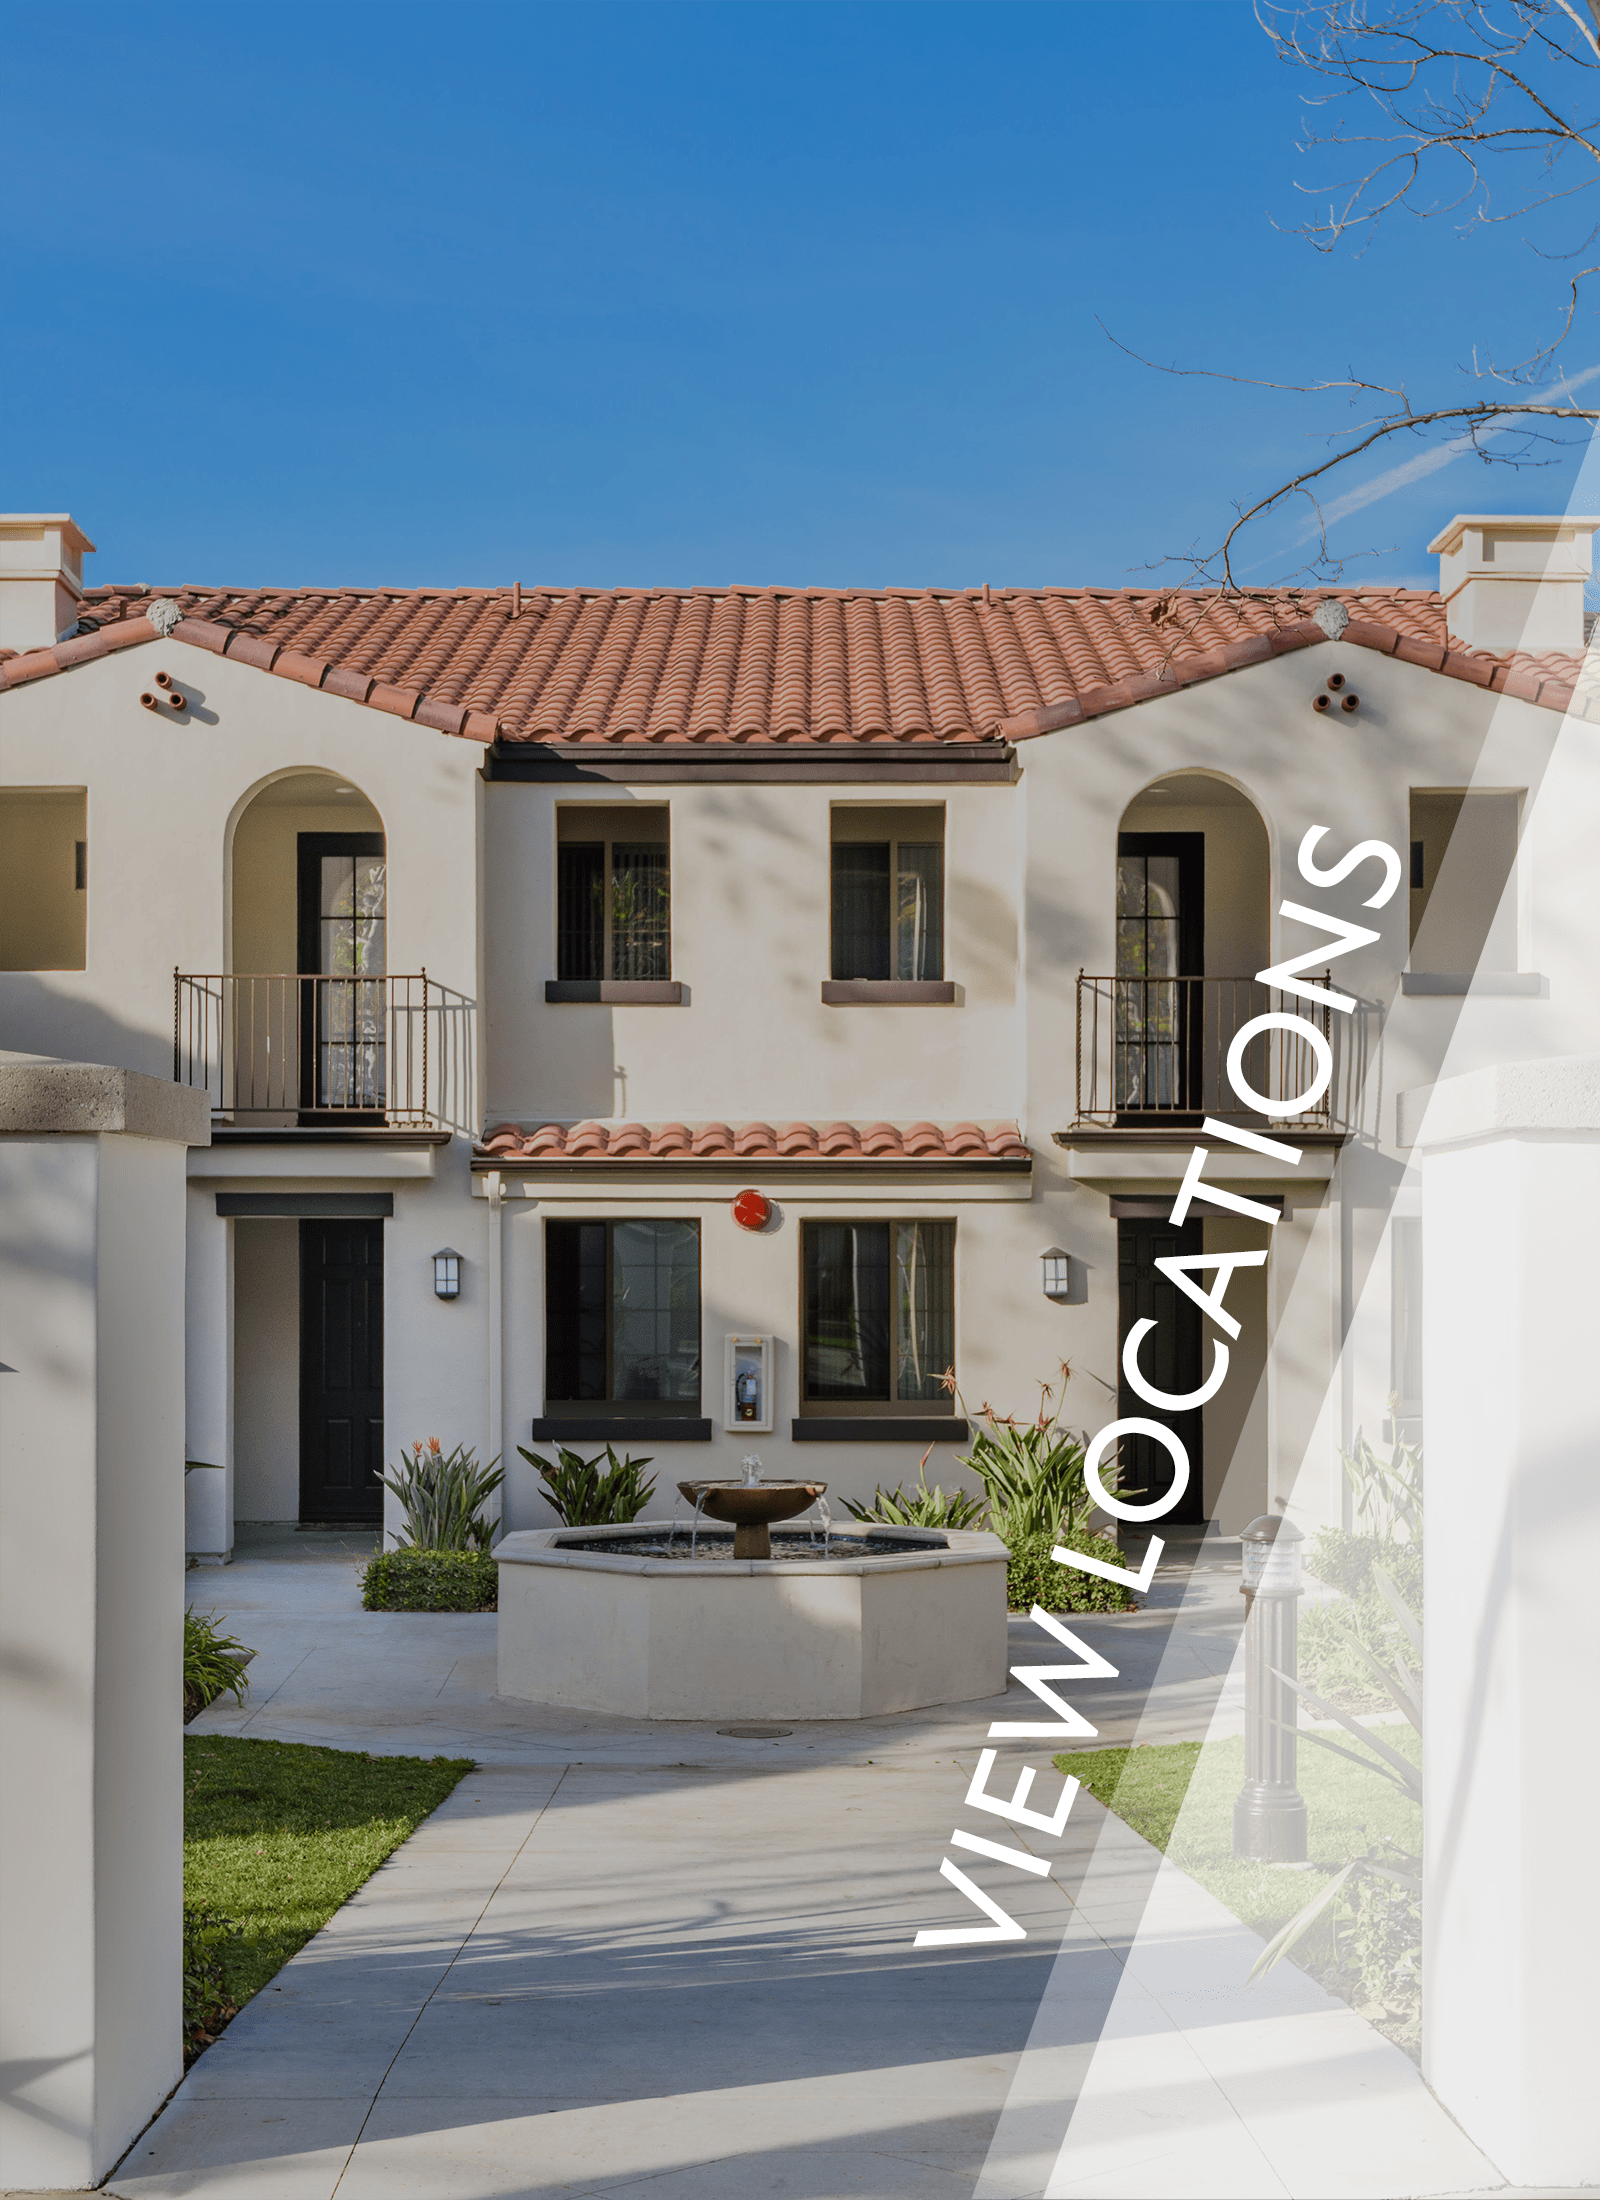 Link to luxury apartment communities in Ventura County by E&S Ring Management Corporation in Los Angeles, California